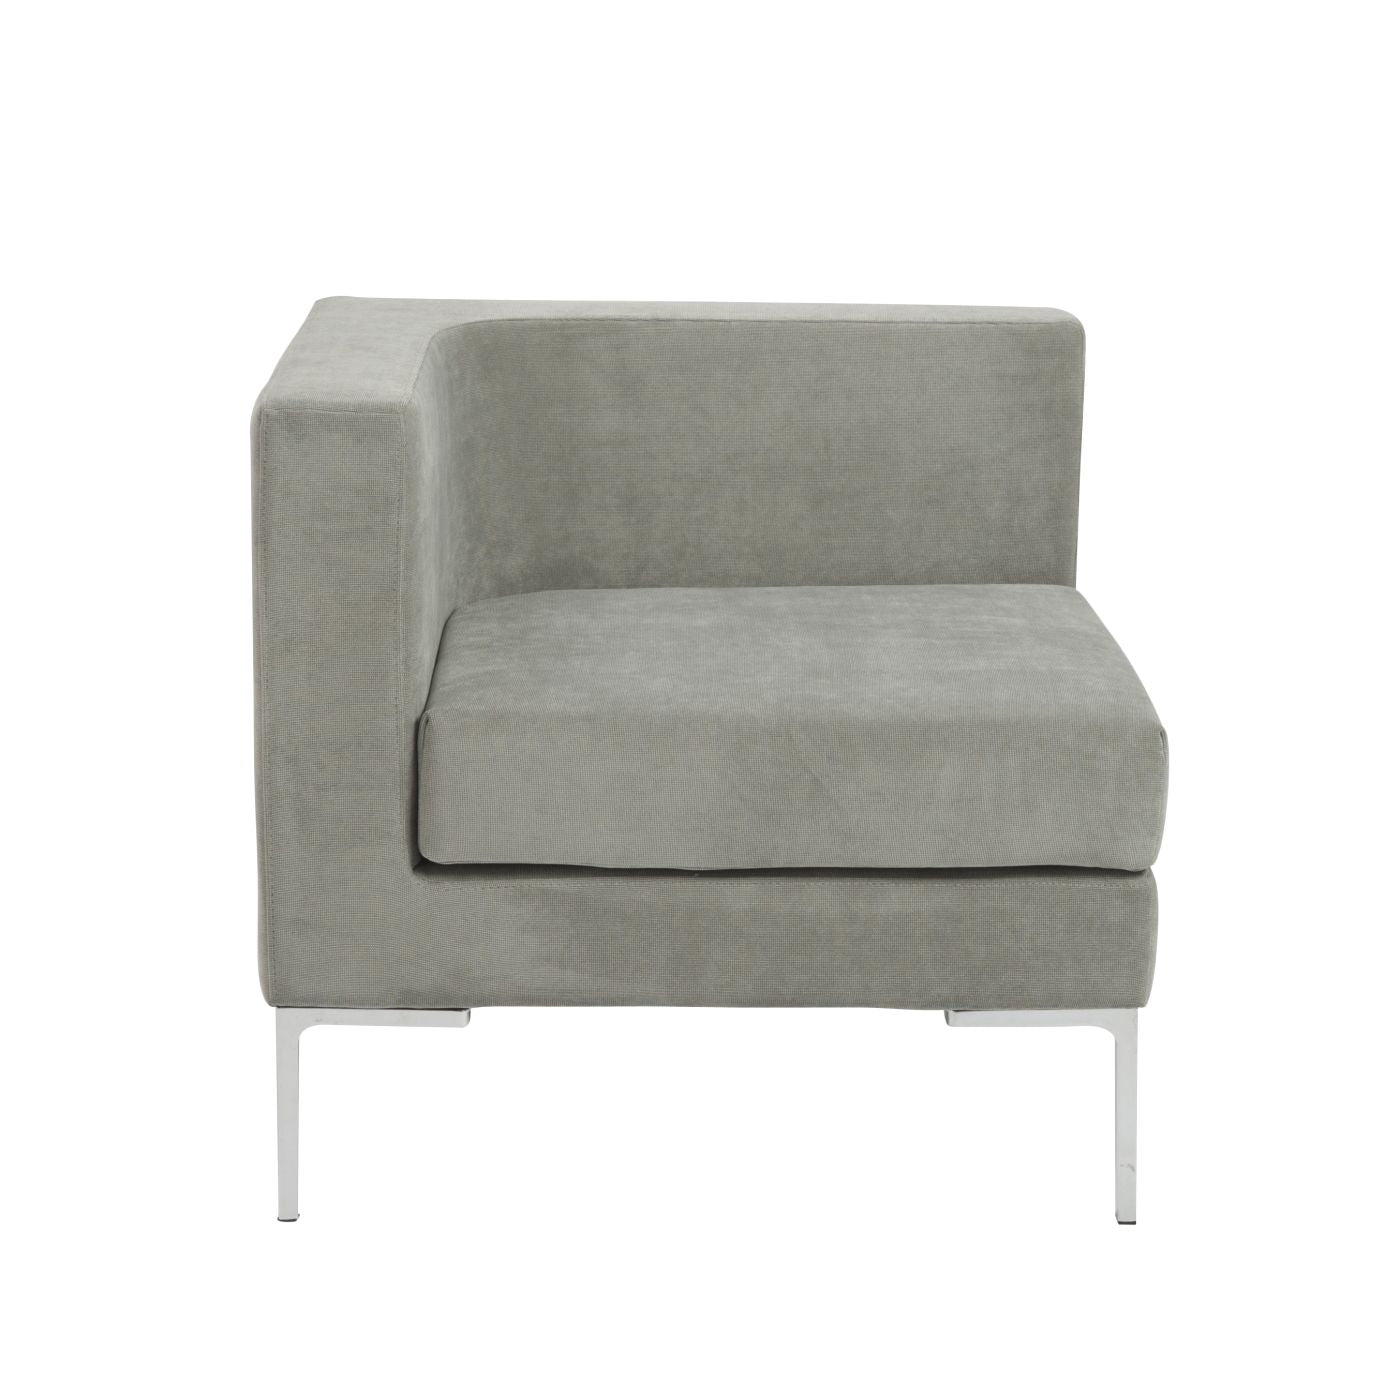 Euro style vittorio sofa with arm rests in gray euro for Sofa with only one arm